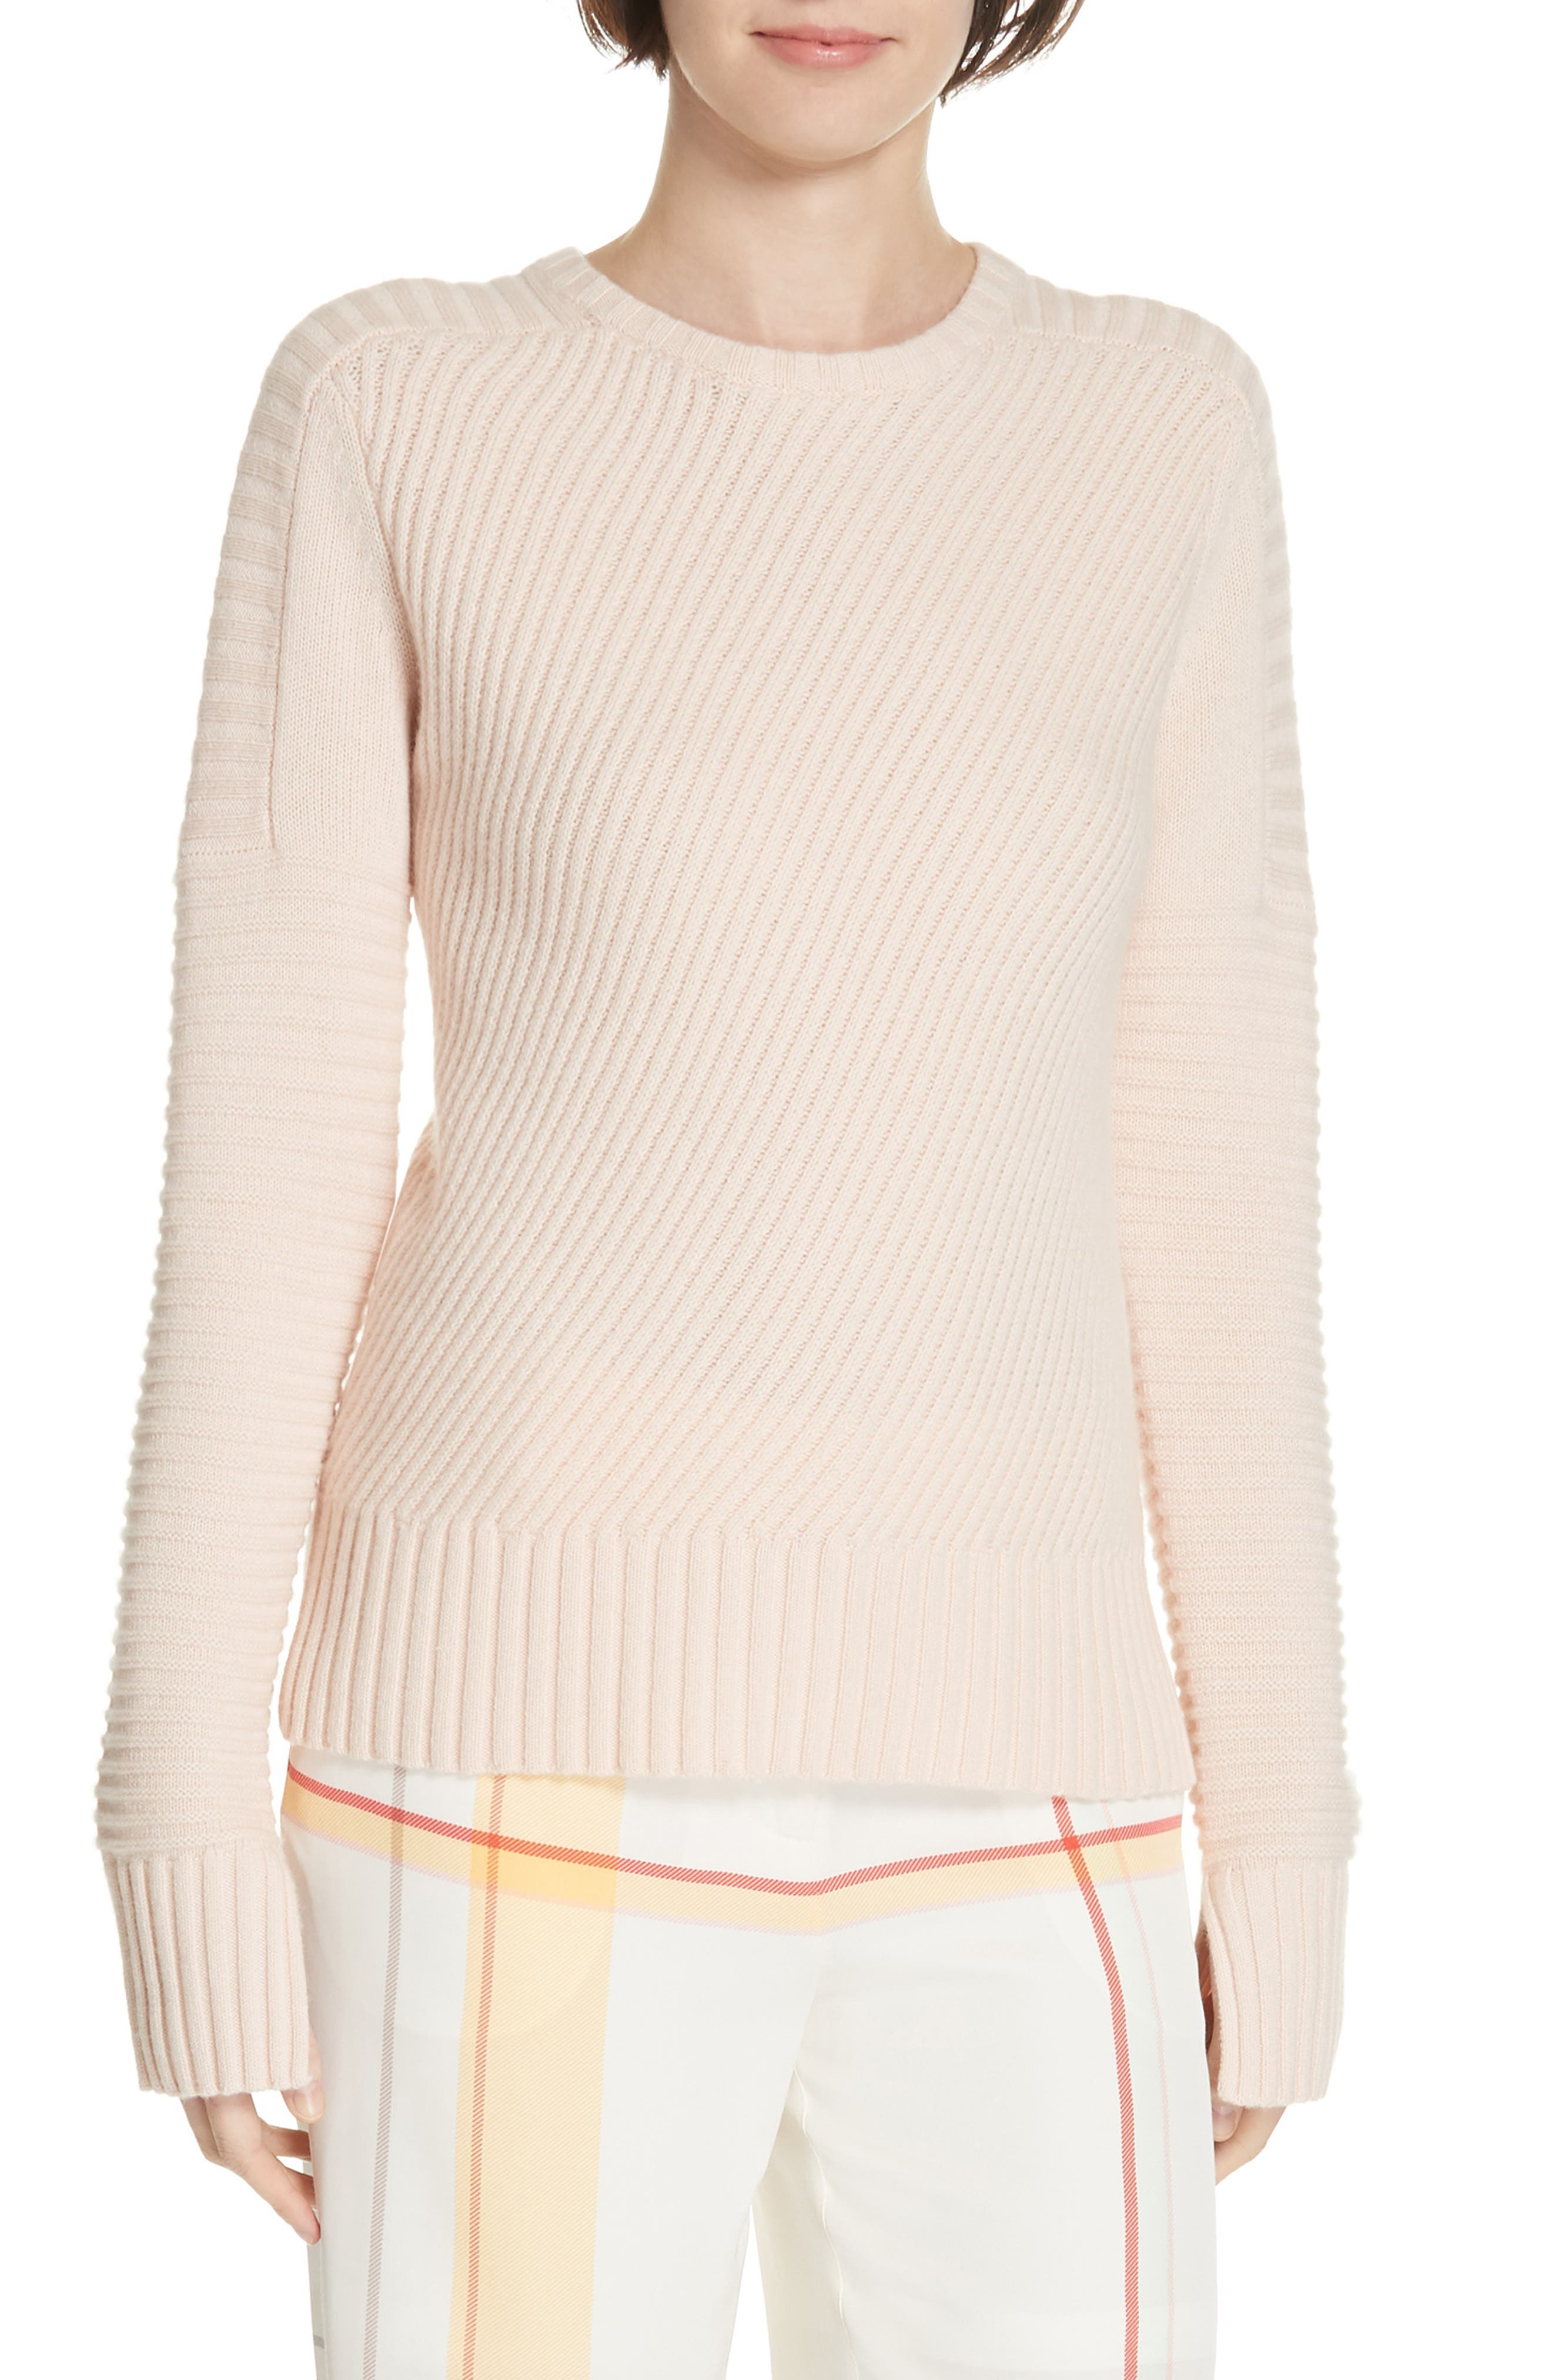 Abril Wool & Cashmere Sweater,                             Main thumbnail 1, color,                             ROSETTE